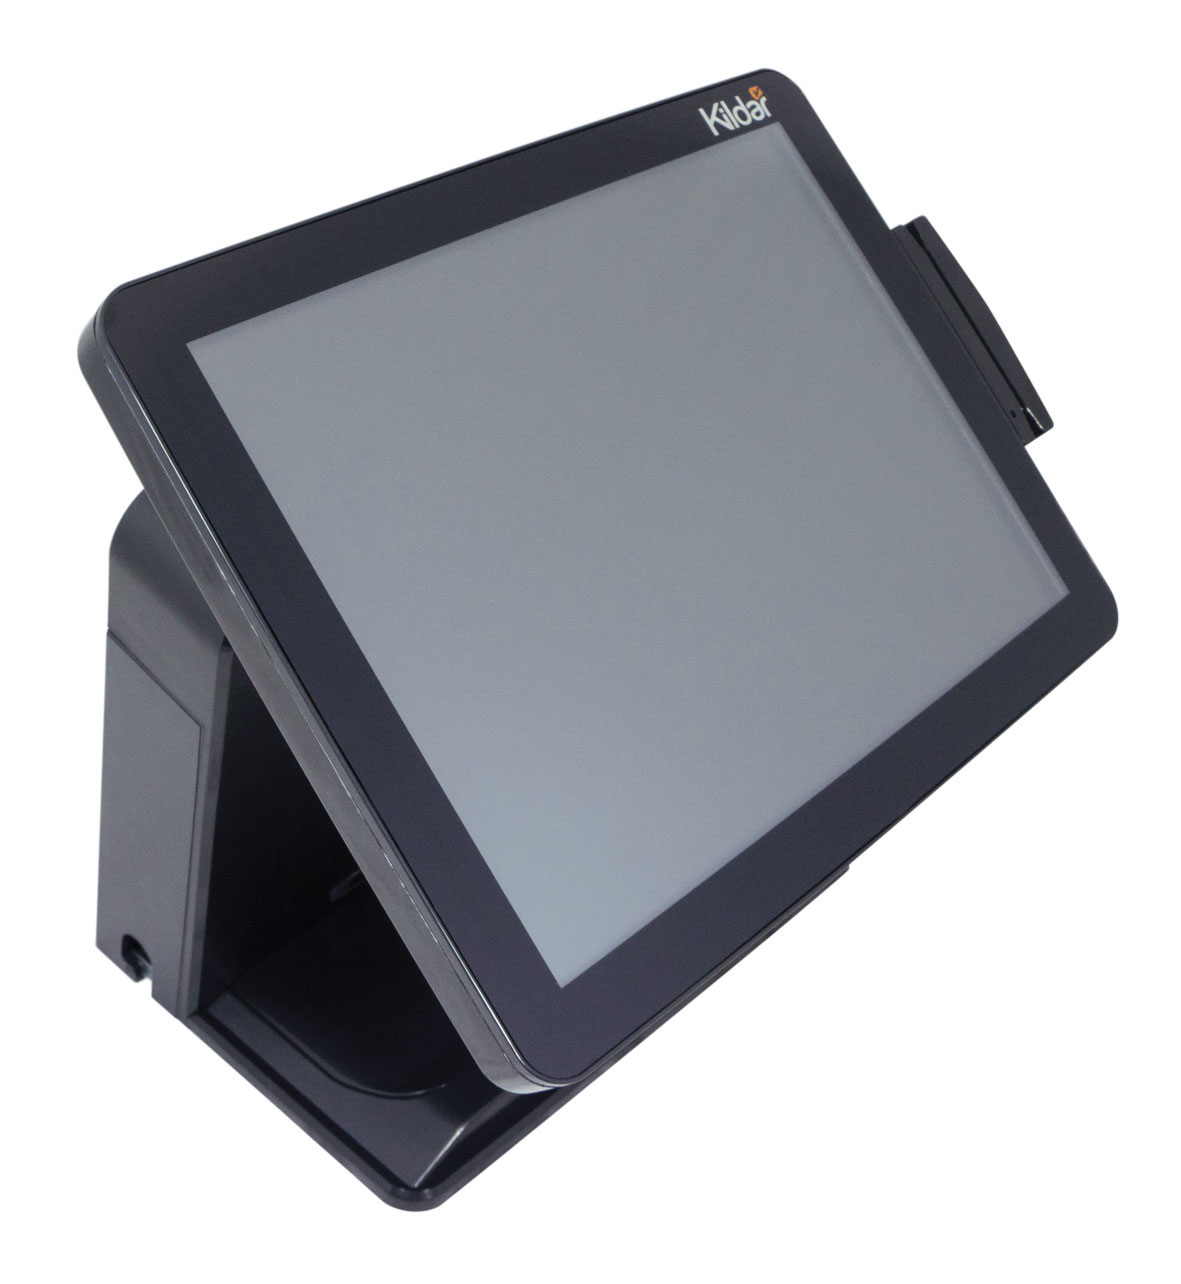 KILDAR - POS Touch Screen Terminals - DataTouch T1573 - Right Side